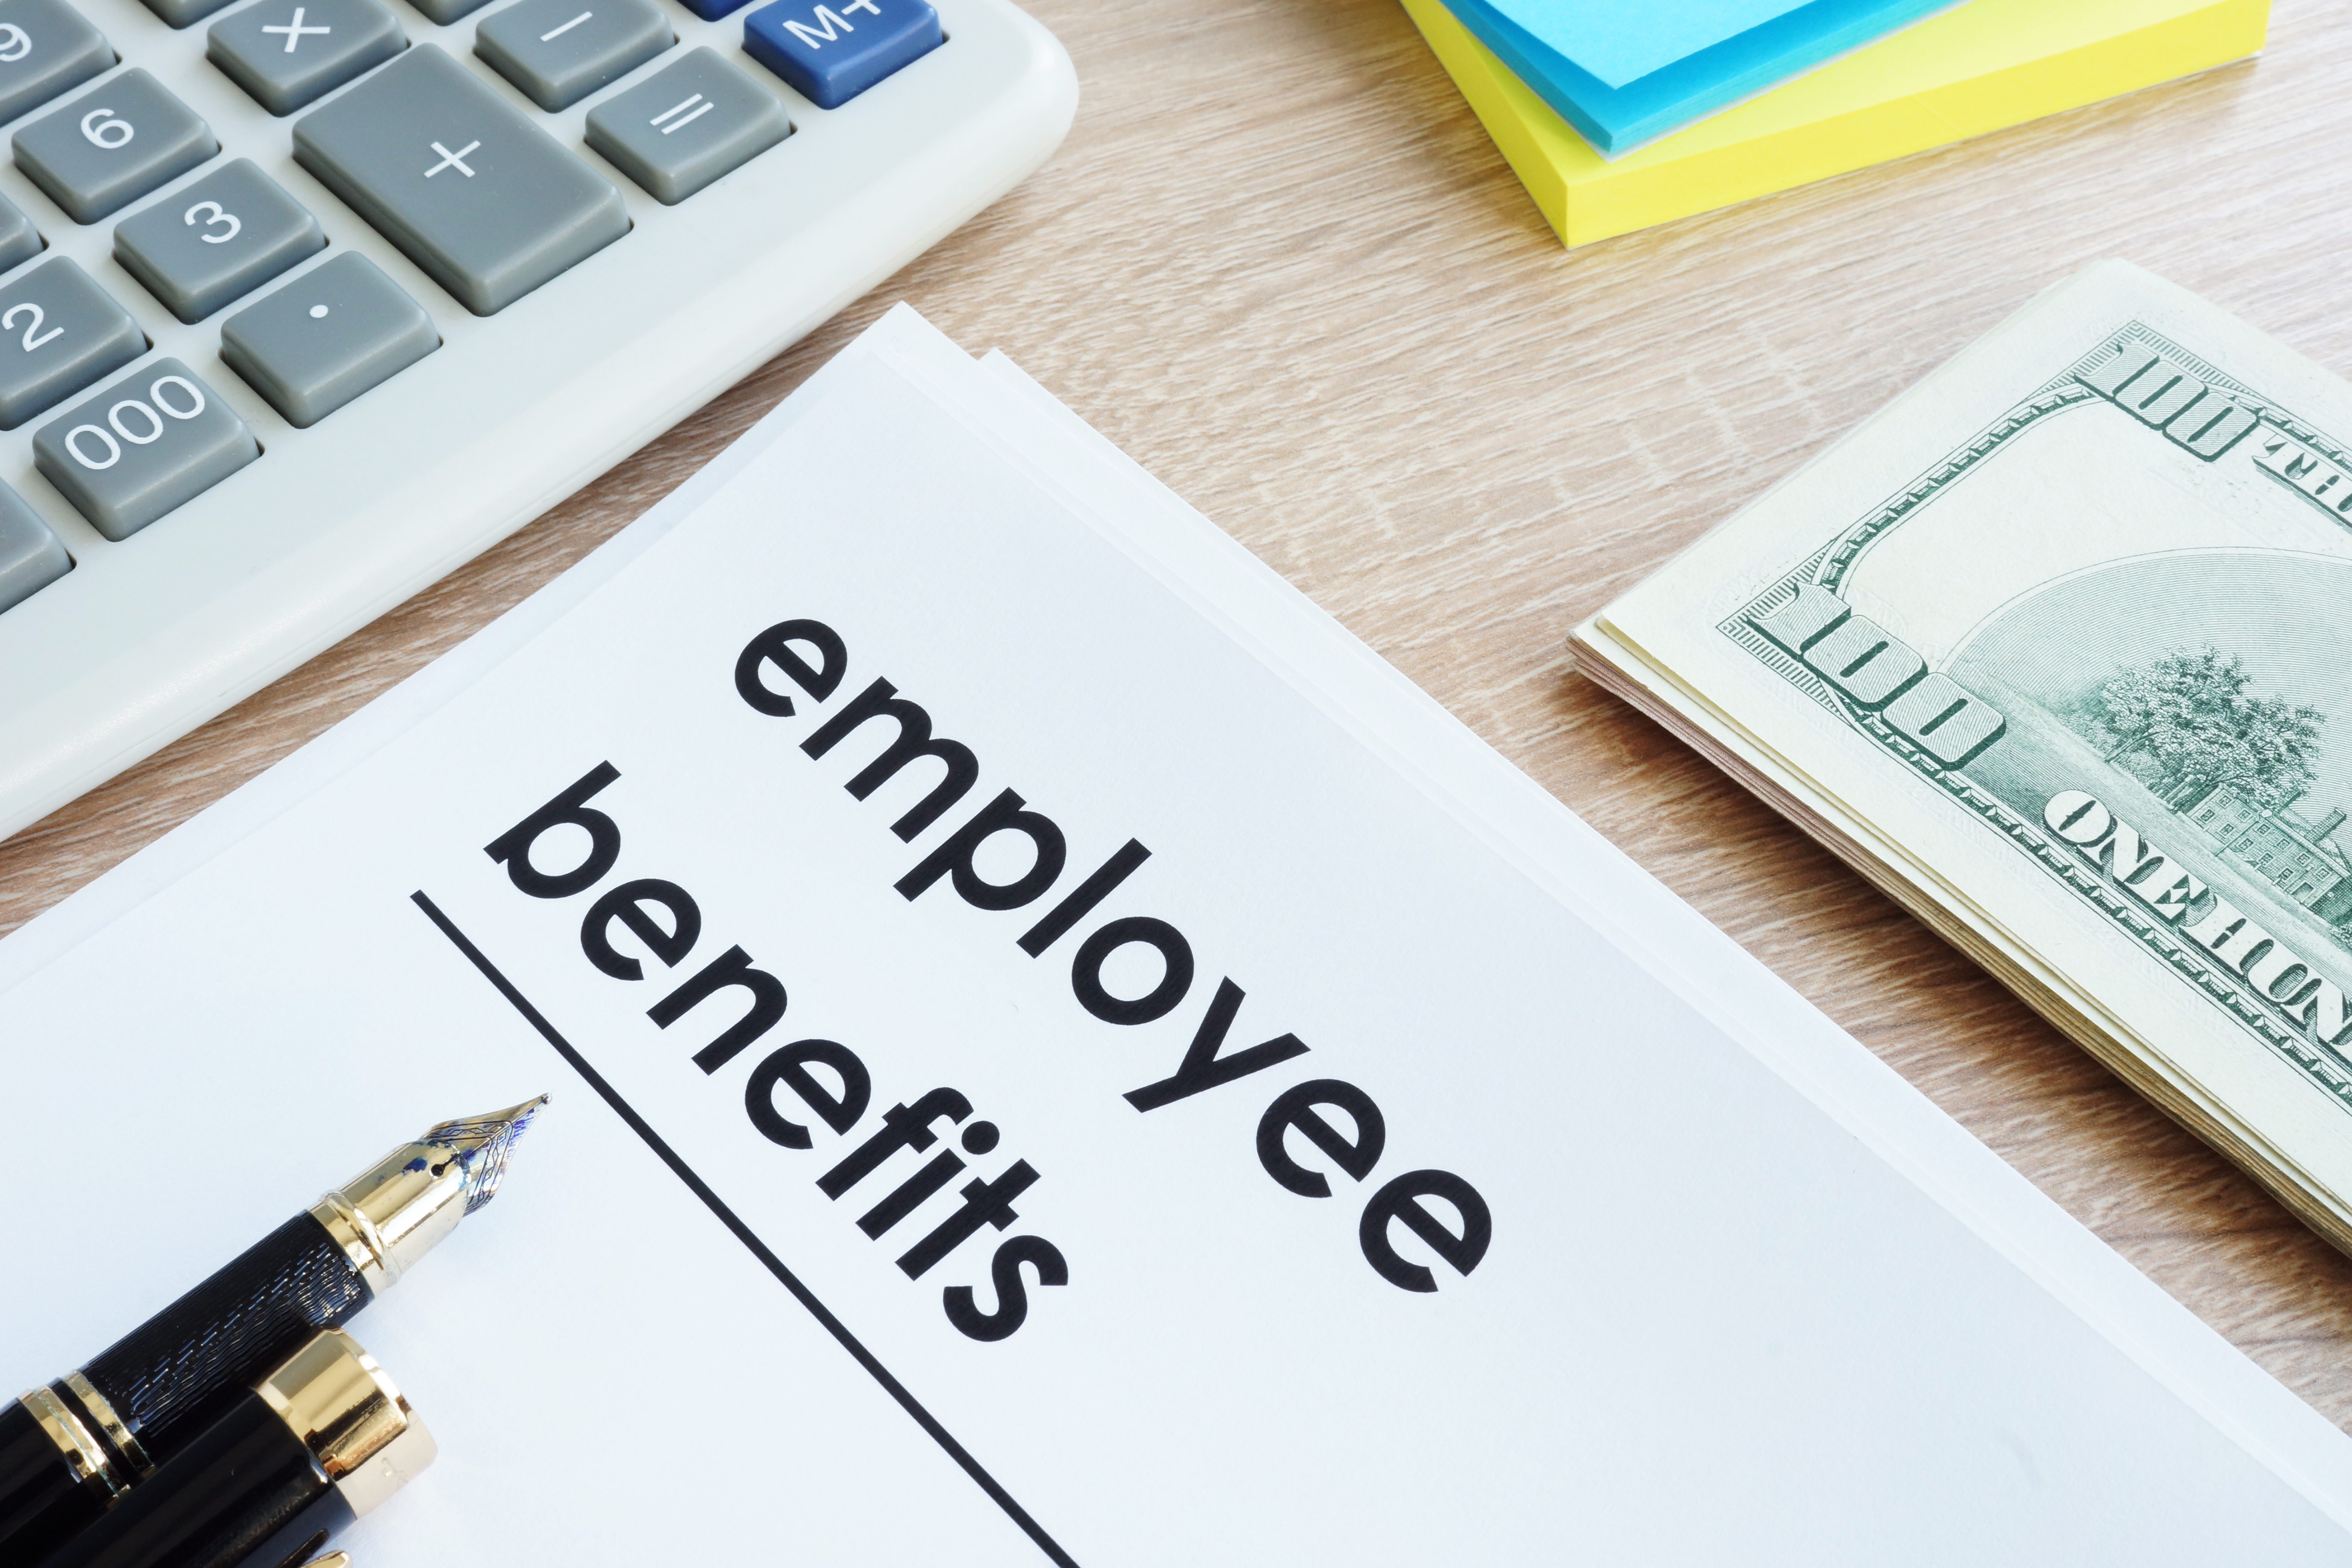 Can Your Employer Take Away Benefits Without Informing You